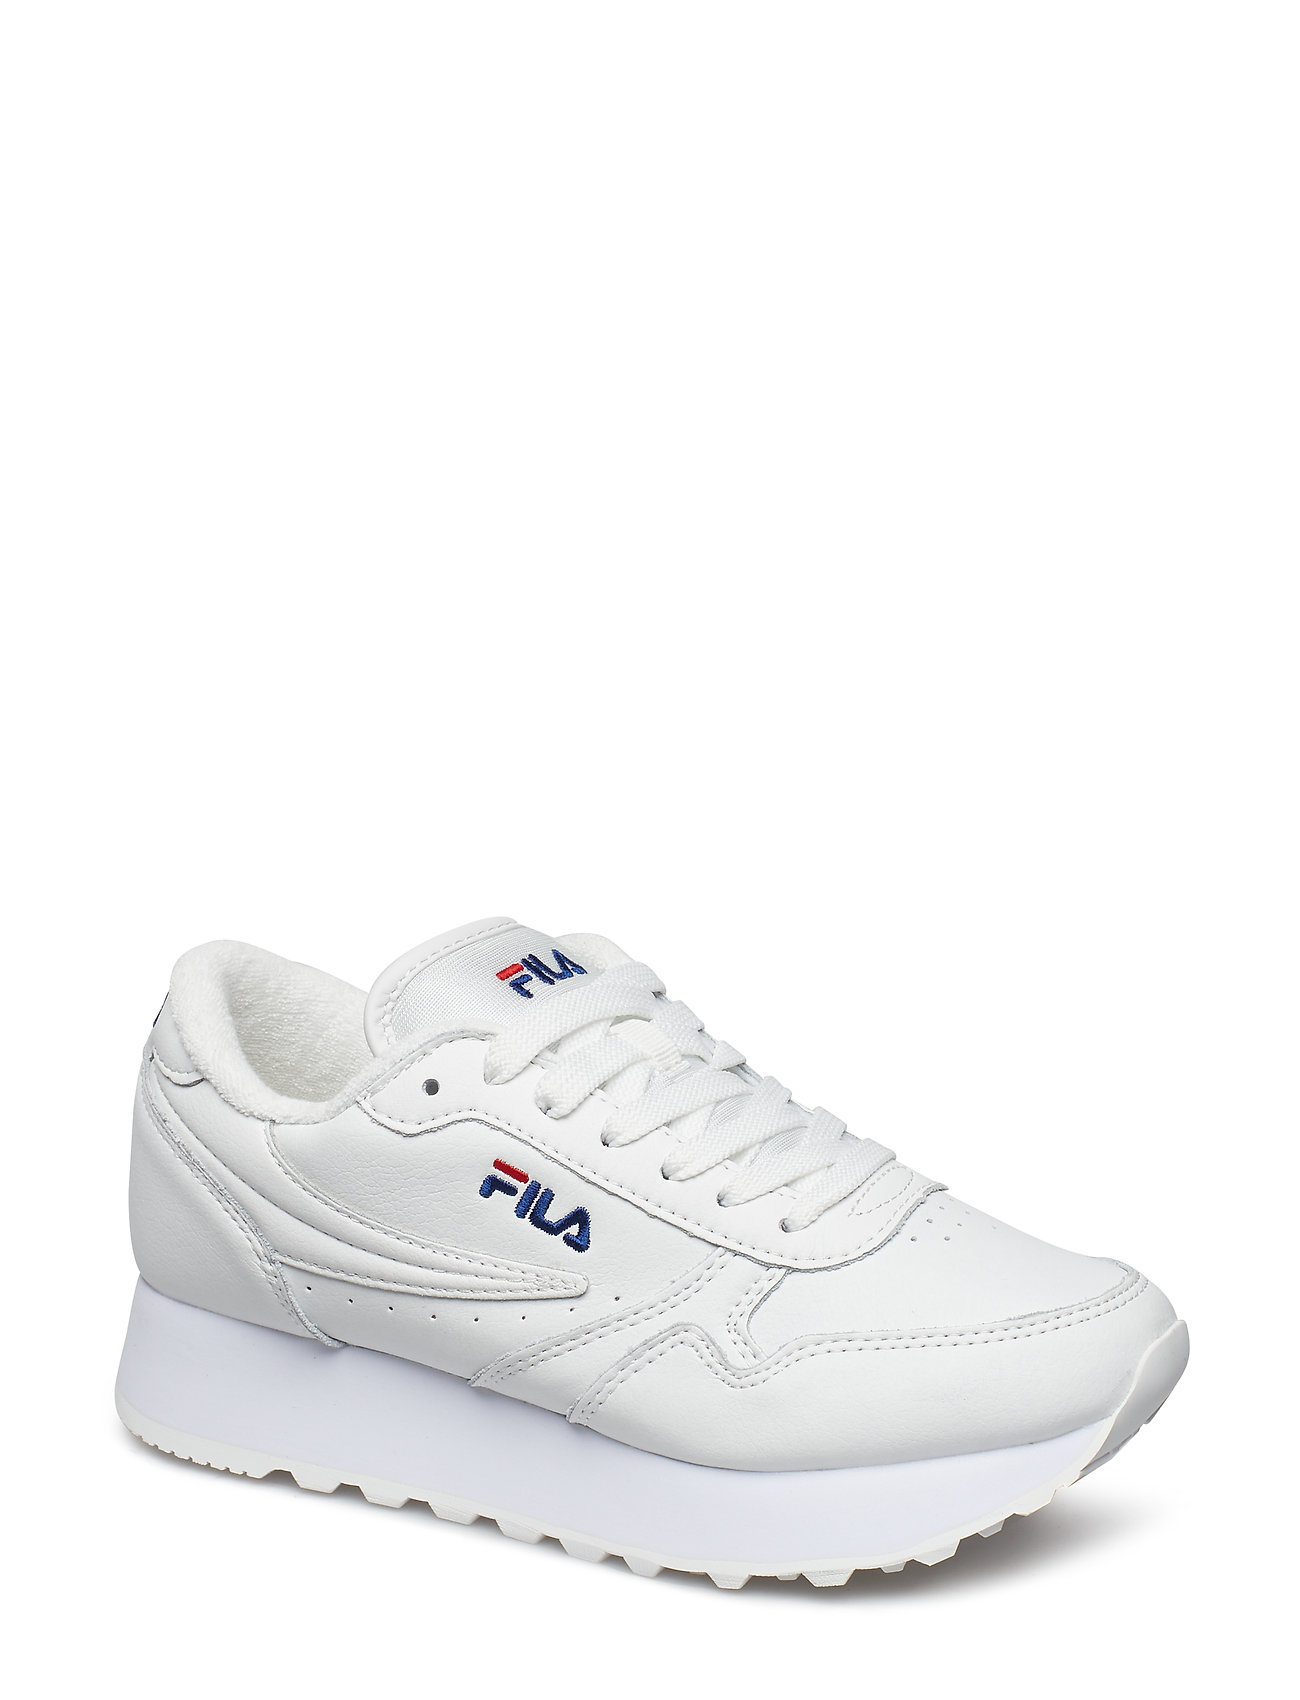 d471c1c7af3 Sort FILA Orbit Zeppa L Wmn sneakers for dame - Pashion.dk